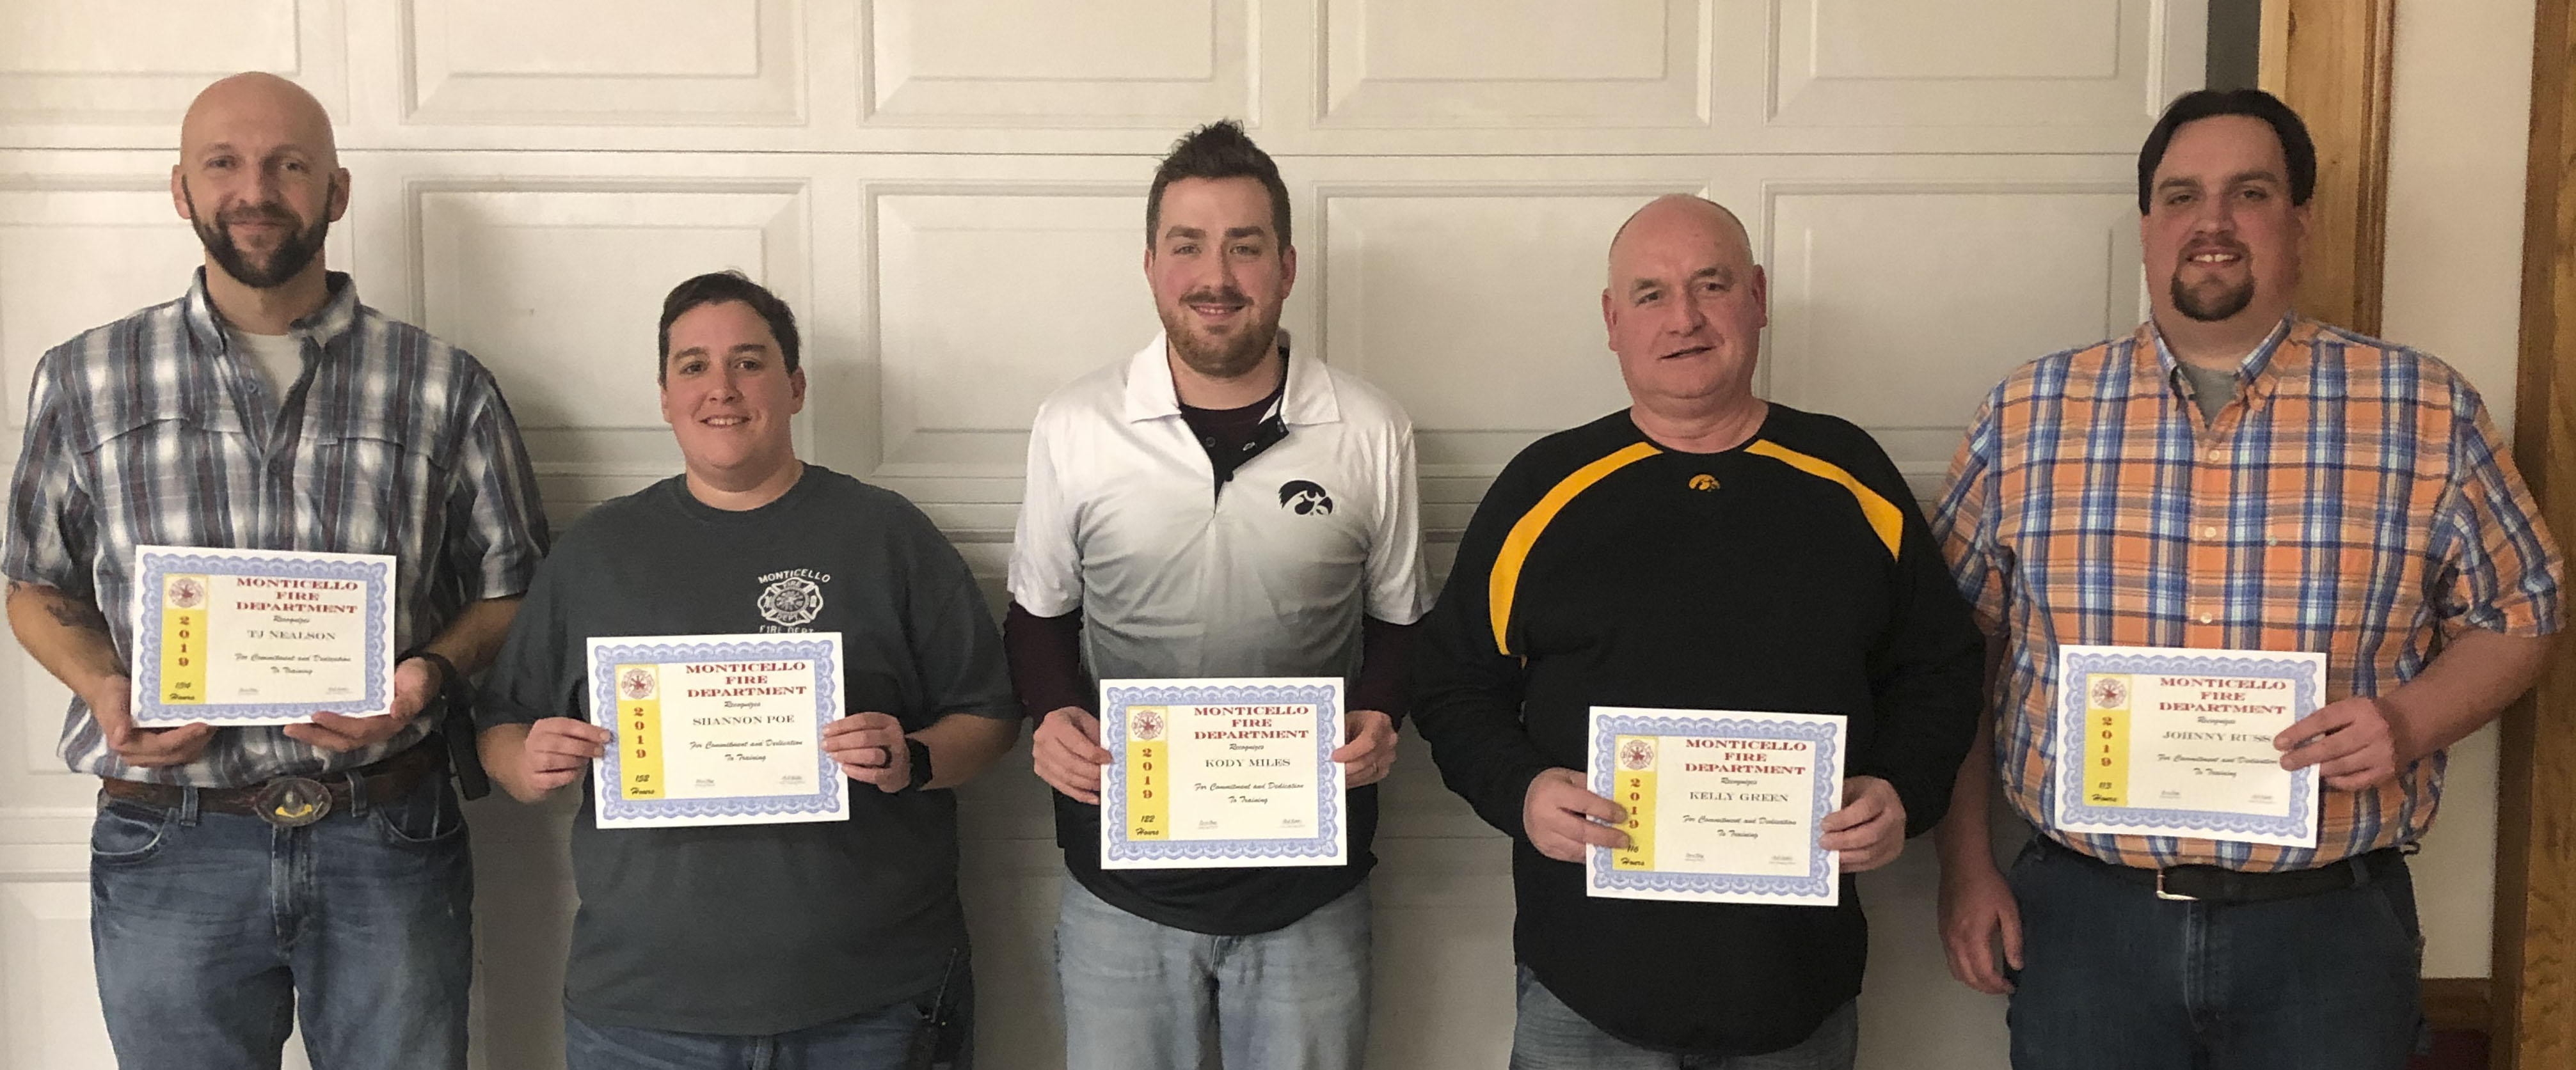 Receiving awards for clocking the most training hours were, from left, TJ Nealson, Shannon Poe, Kody Miles, Kelly Green, and Johnny Russ. (Photos by Mark Spensley)